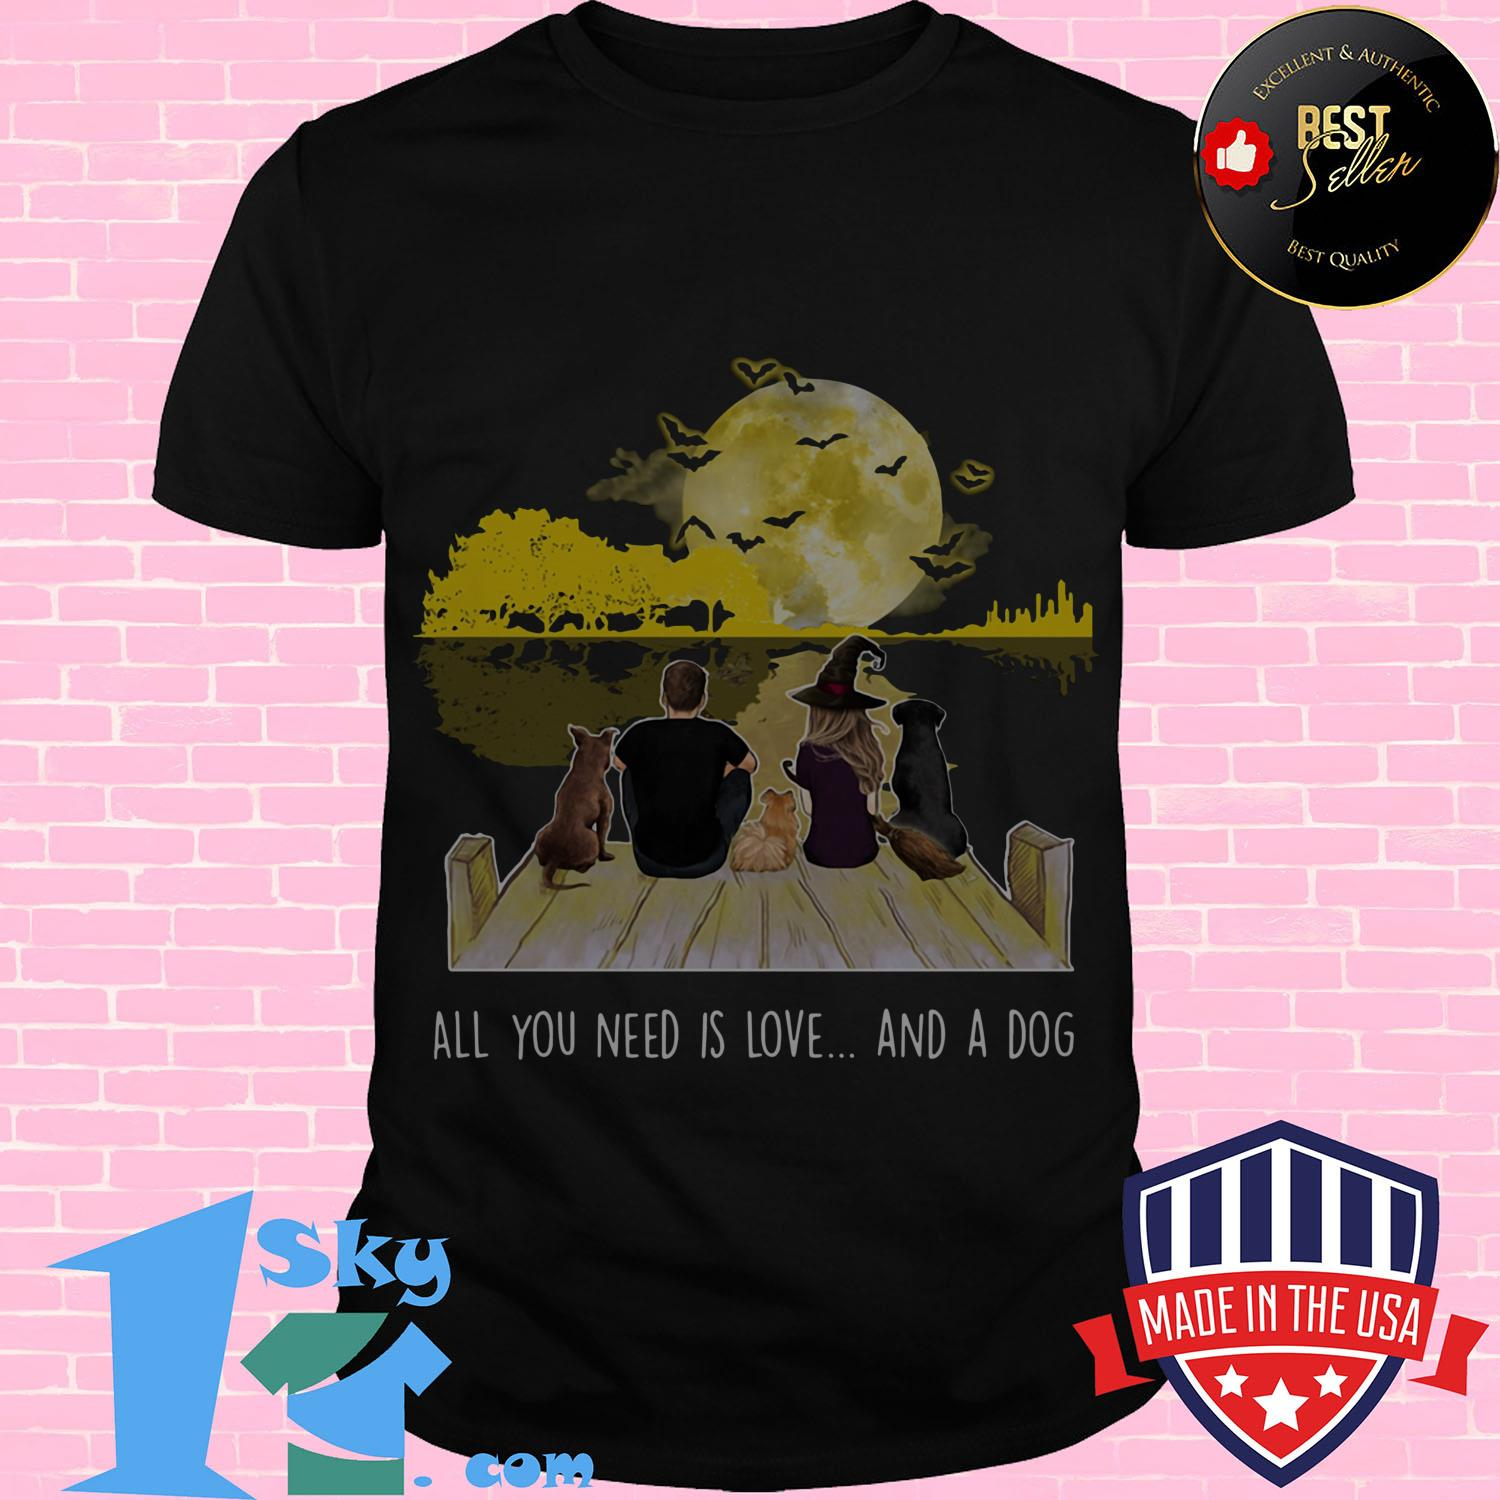 all you need is love and a dog halloween laides tee - All You Need is Love and A Dog Halloween shirt